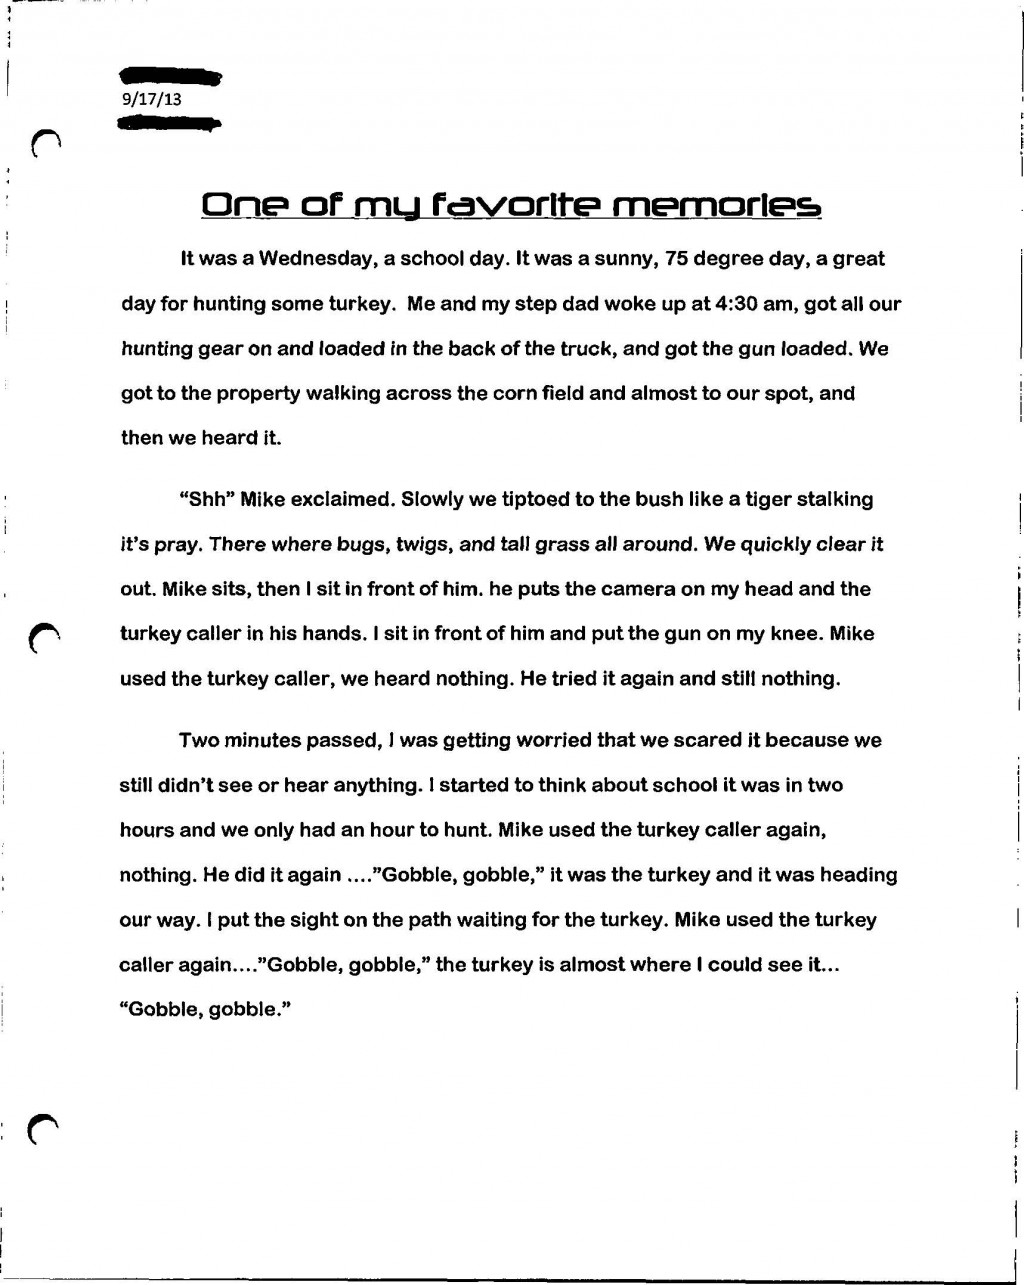 002 Paperexample2 Page 1 Essay Example Who Am I Amazing Examples For Students College How To Write A Good 'who I' Large